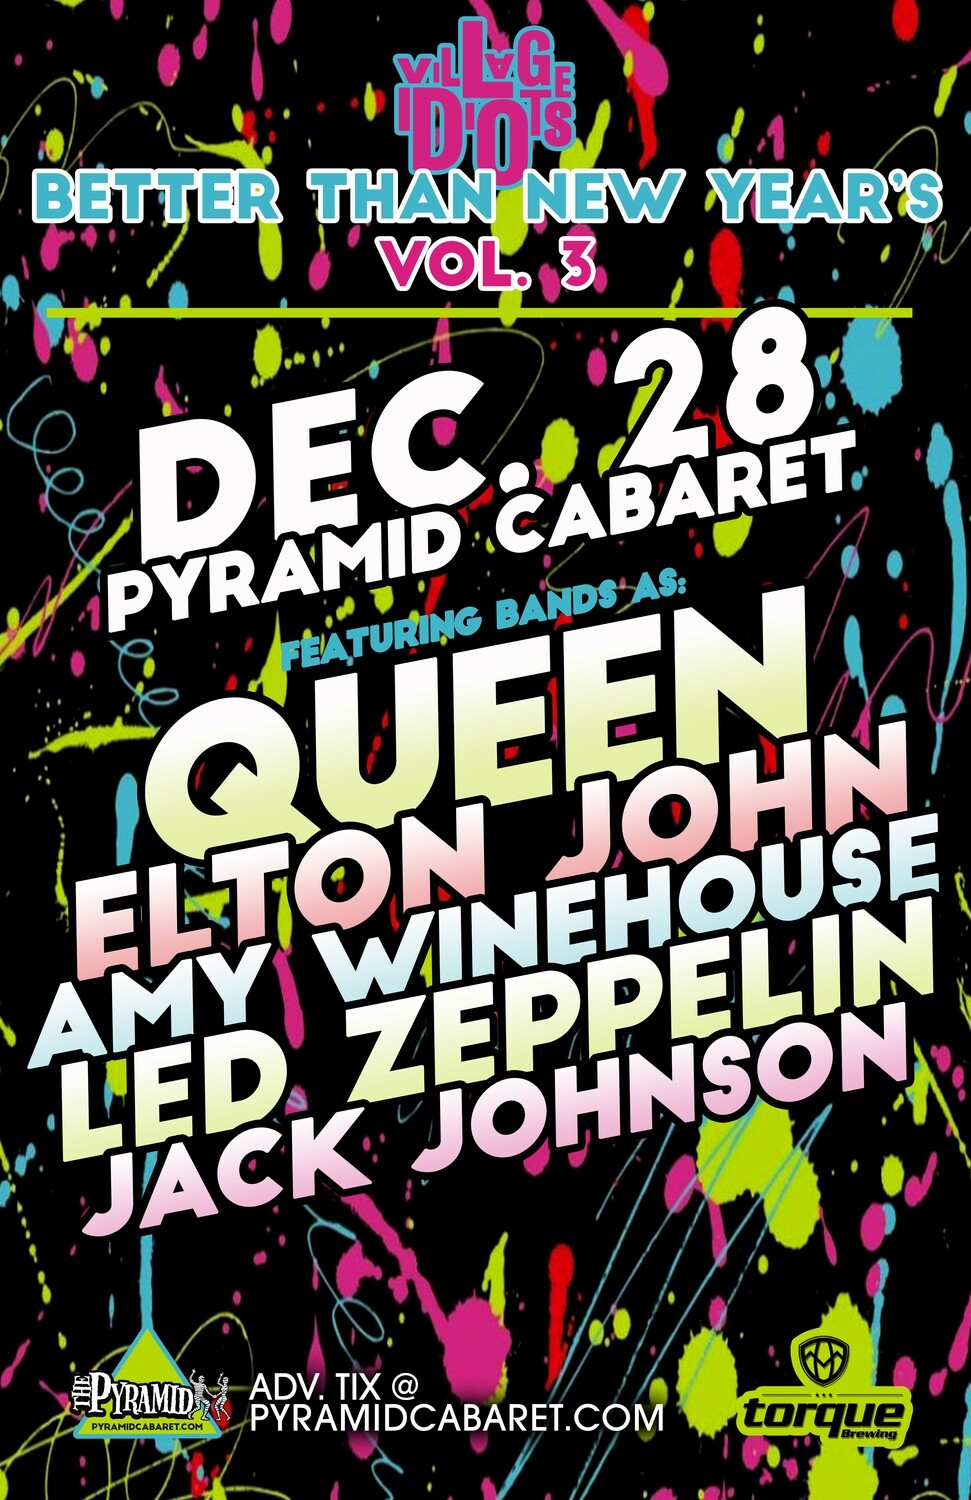 BETTER THAN NEW YEAR'S 3 - DEC. 28 - The Pyramid